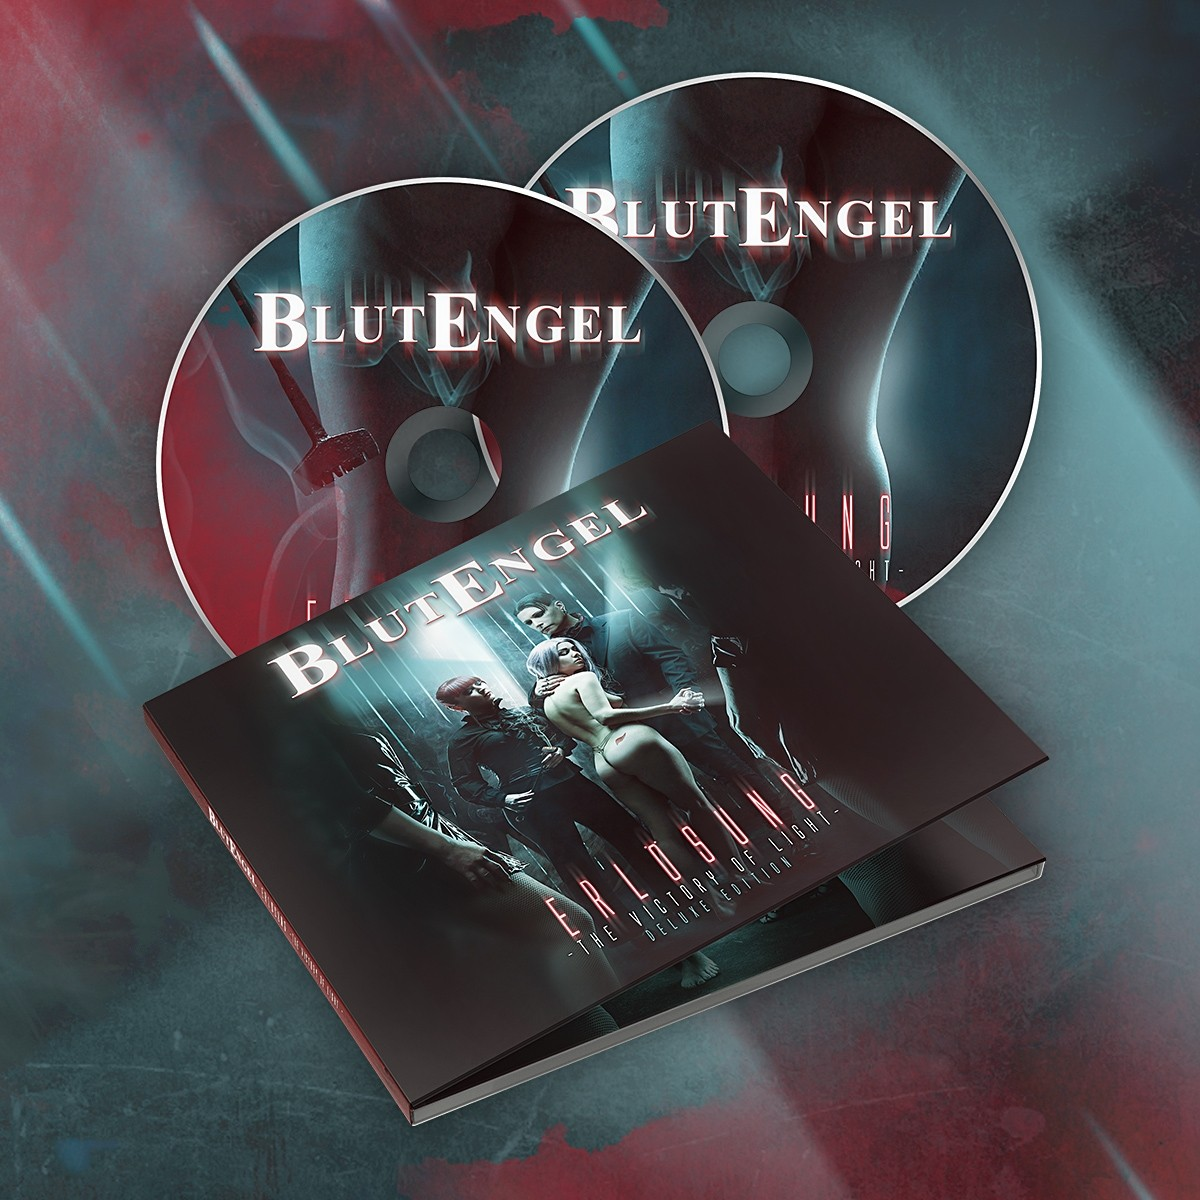 Blutengel - Erlösung - The Victory Of Light (Deluxe Edition) - 2CD